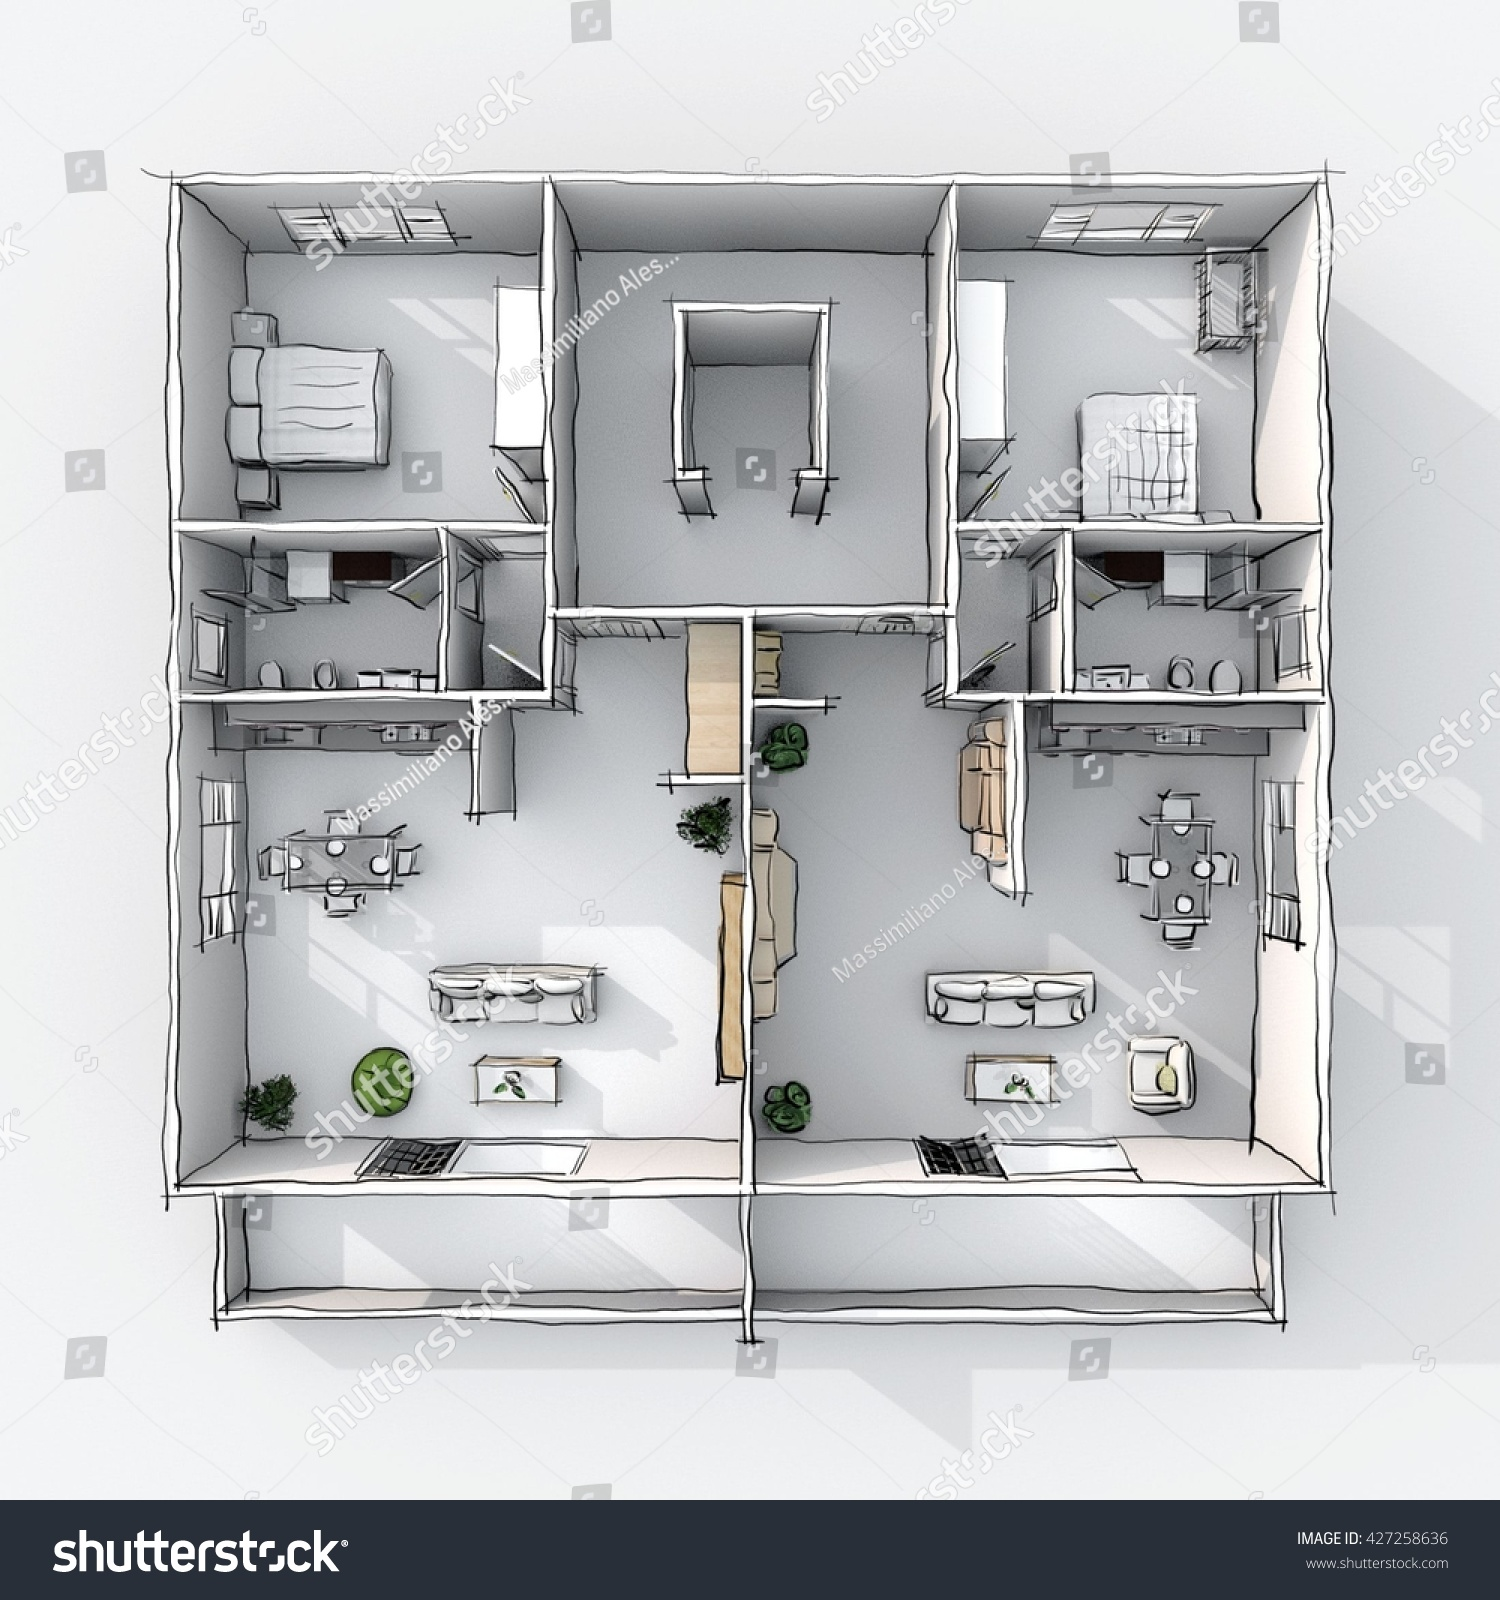 3d interior freehand sketch drawing plan view of furnished for 3d bedroom drawing